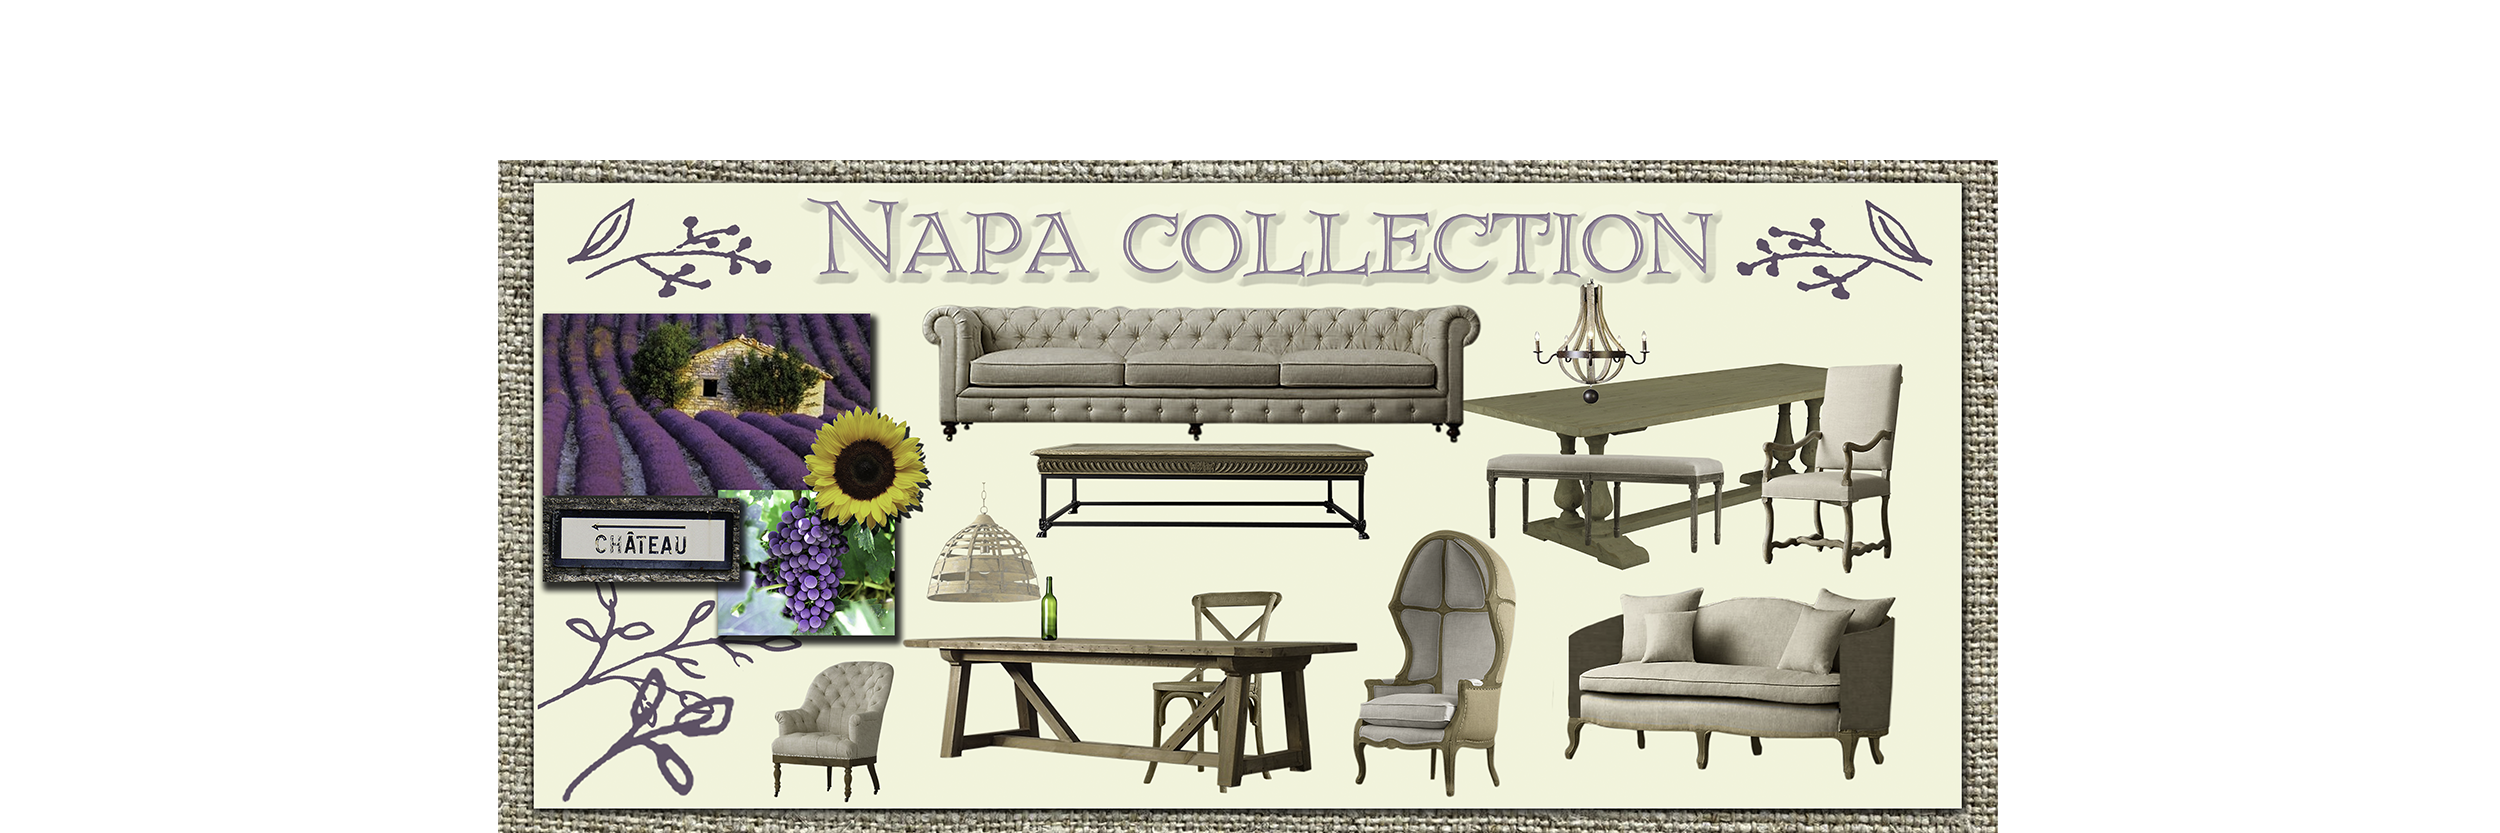 NAPA-COLLECTION-final